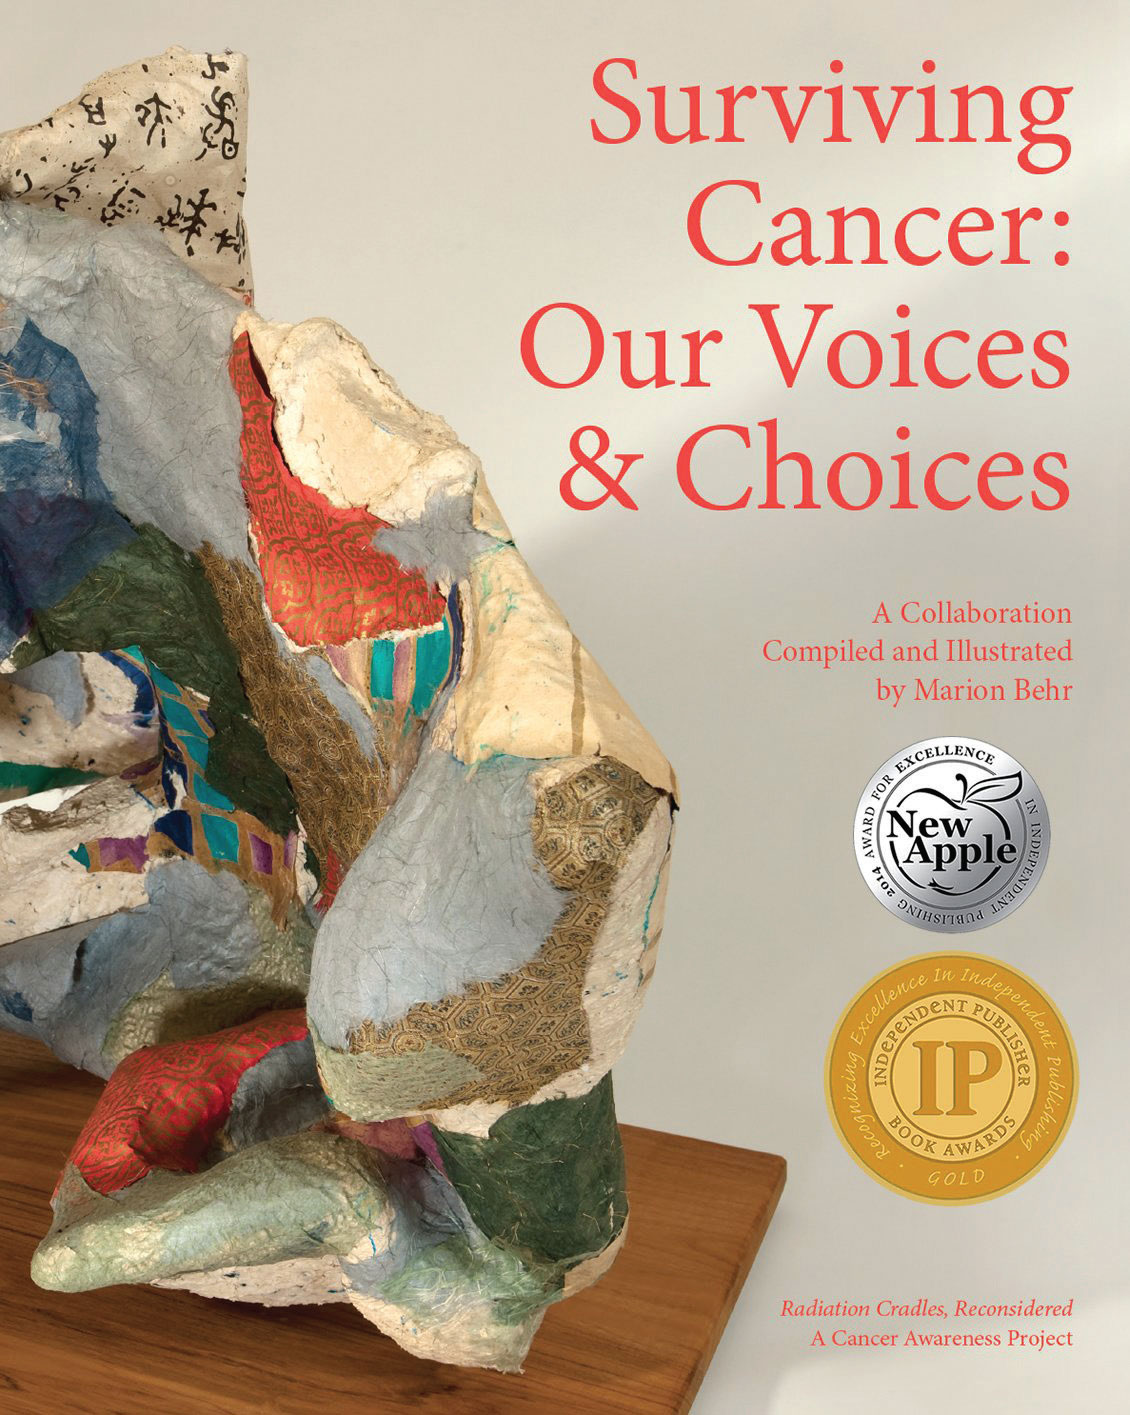 Surviving Cancer: Our Voices & Choices